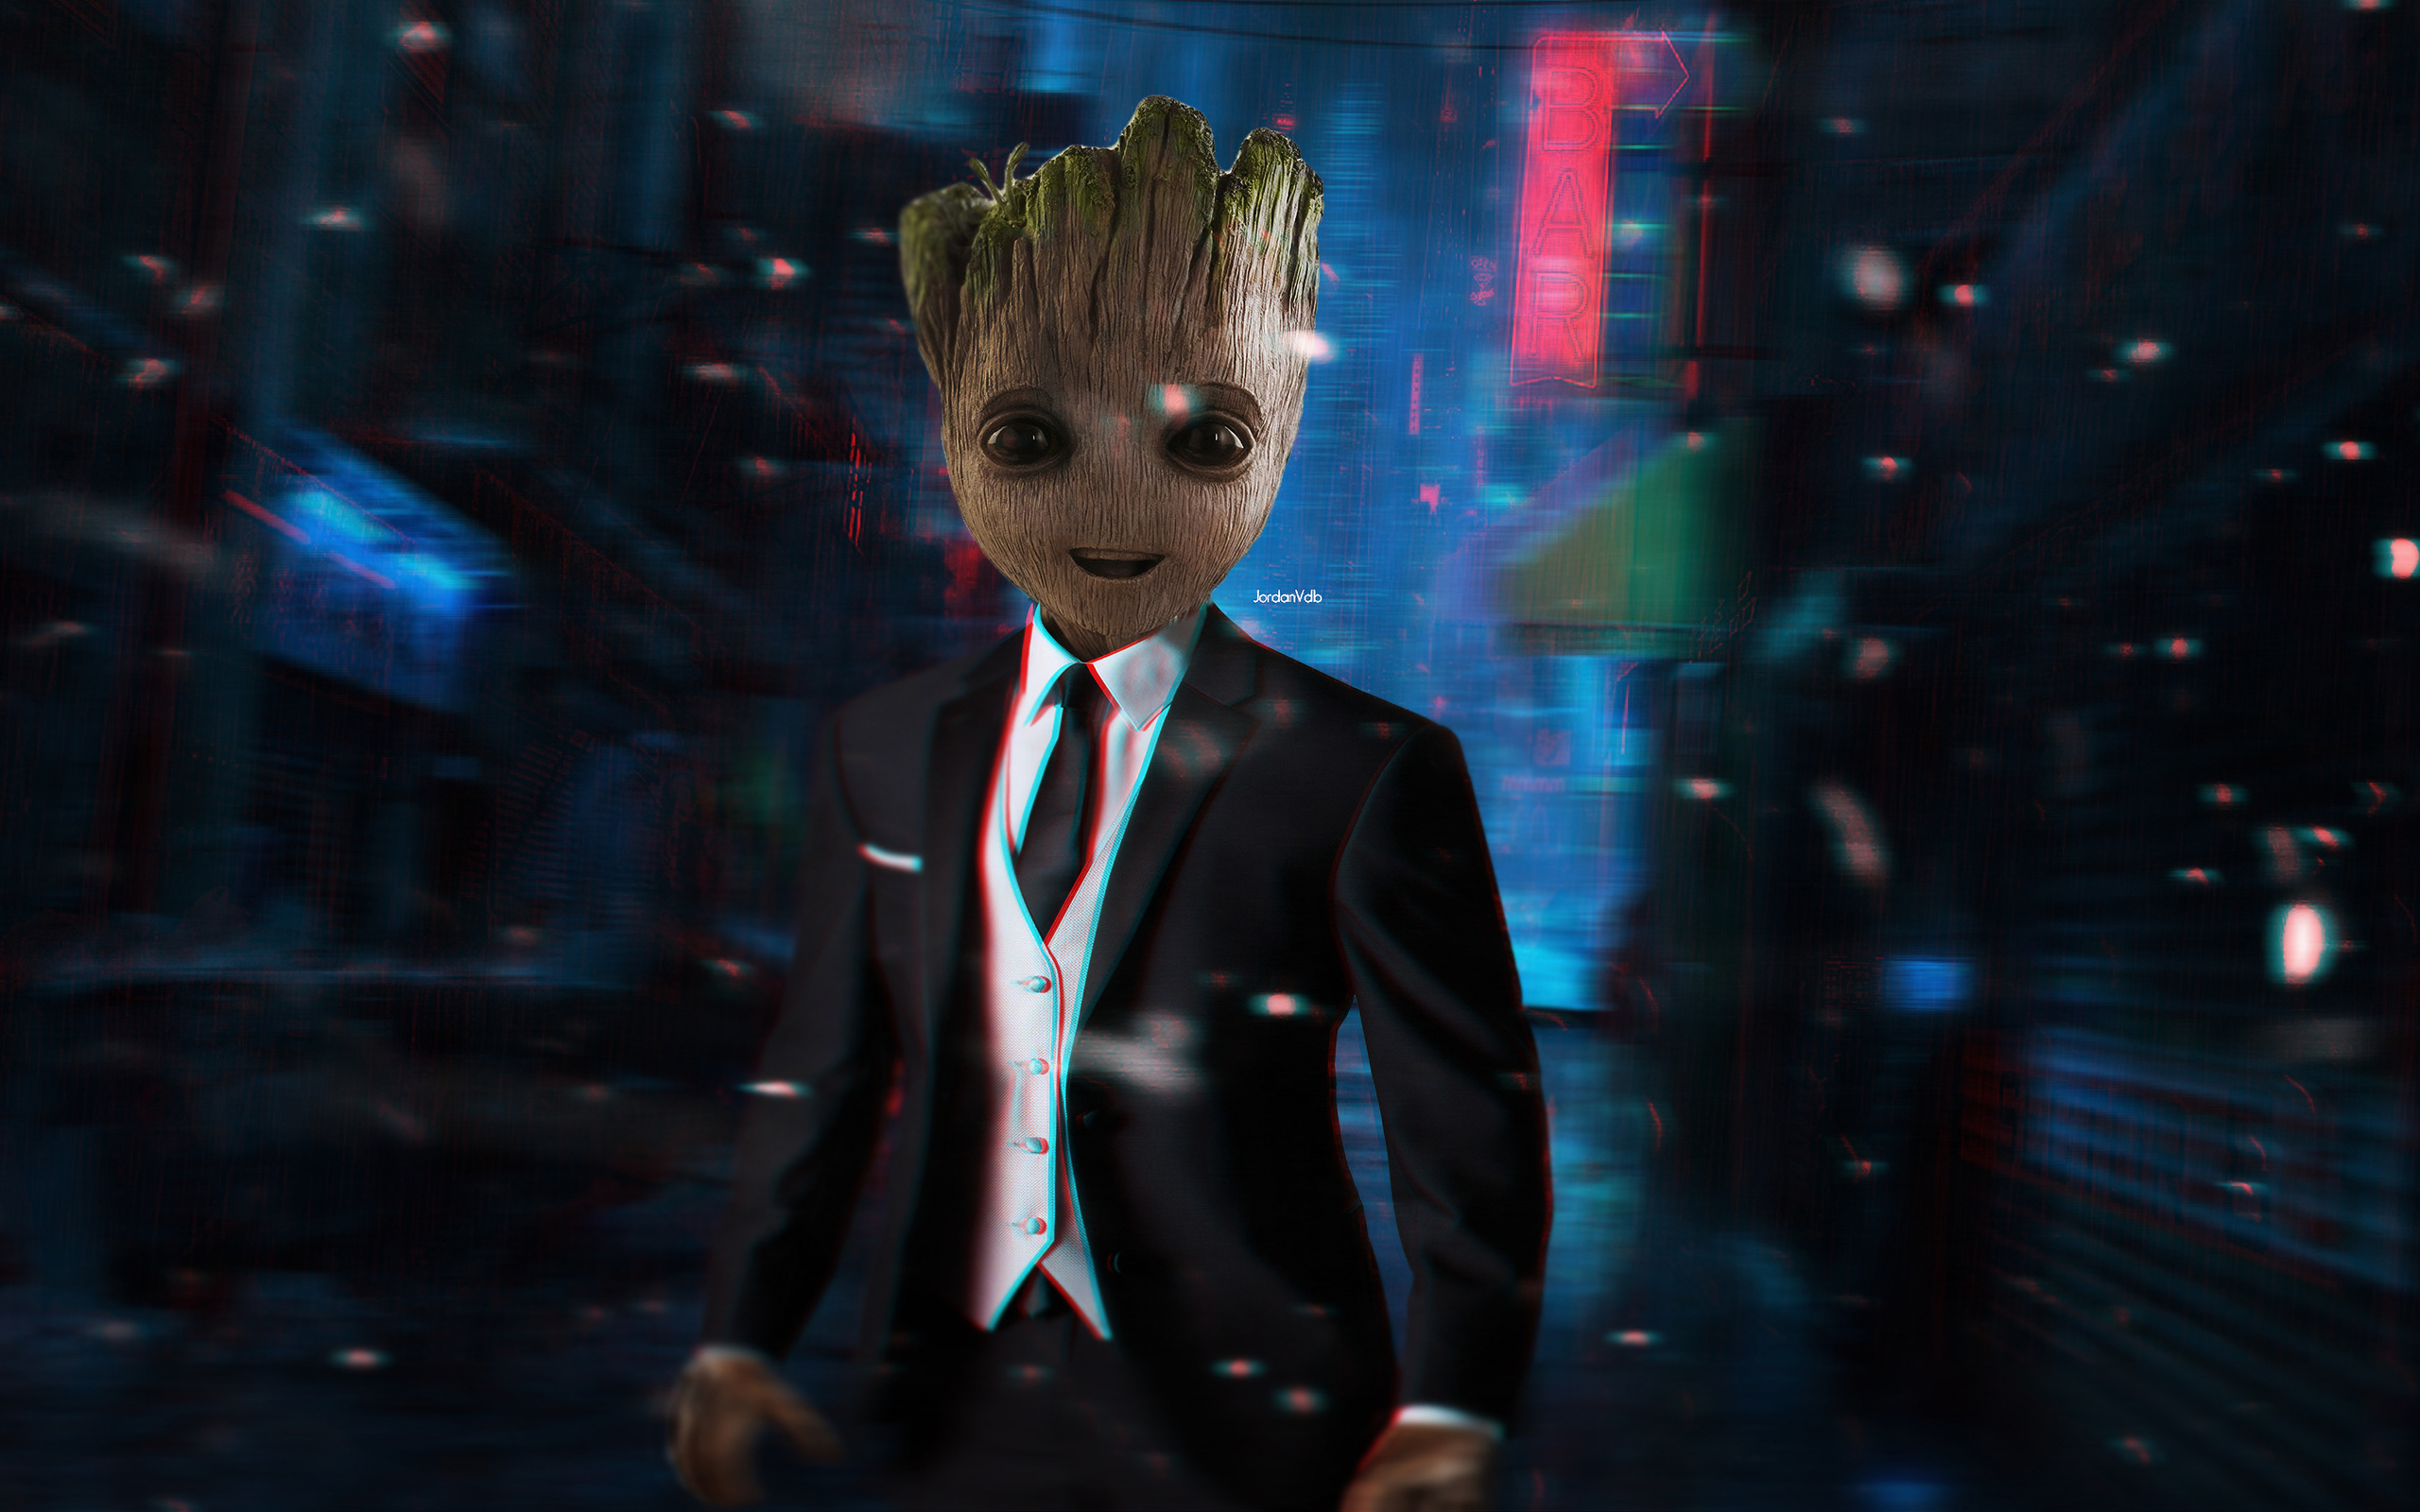 2560x1600 Baby Groot Up For Meeting 2560x1600 Resolution Hd